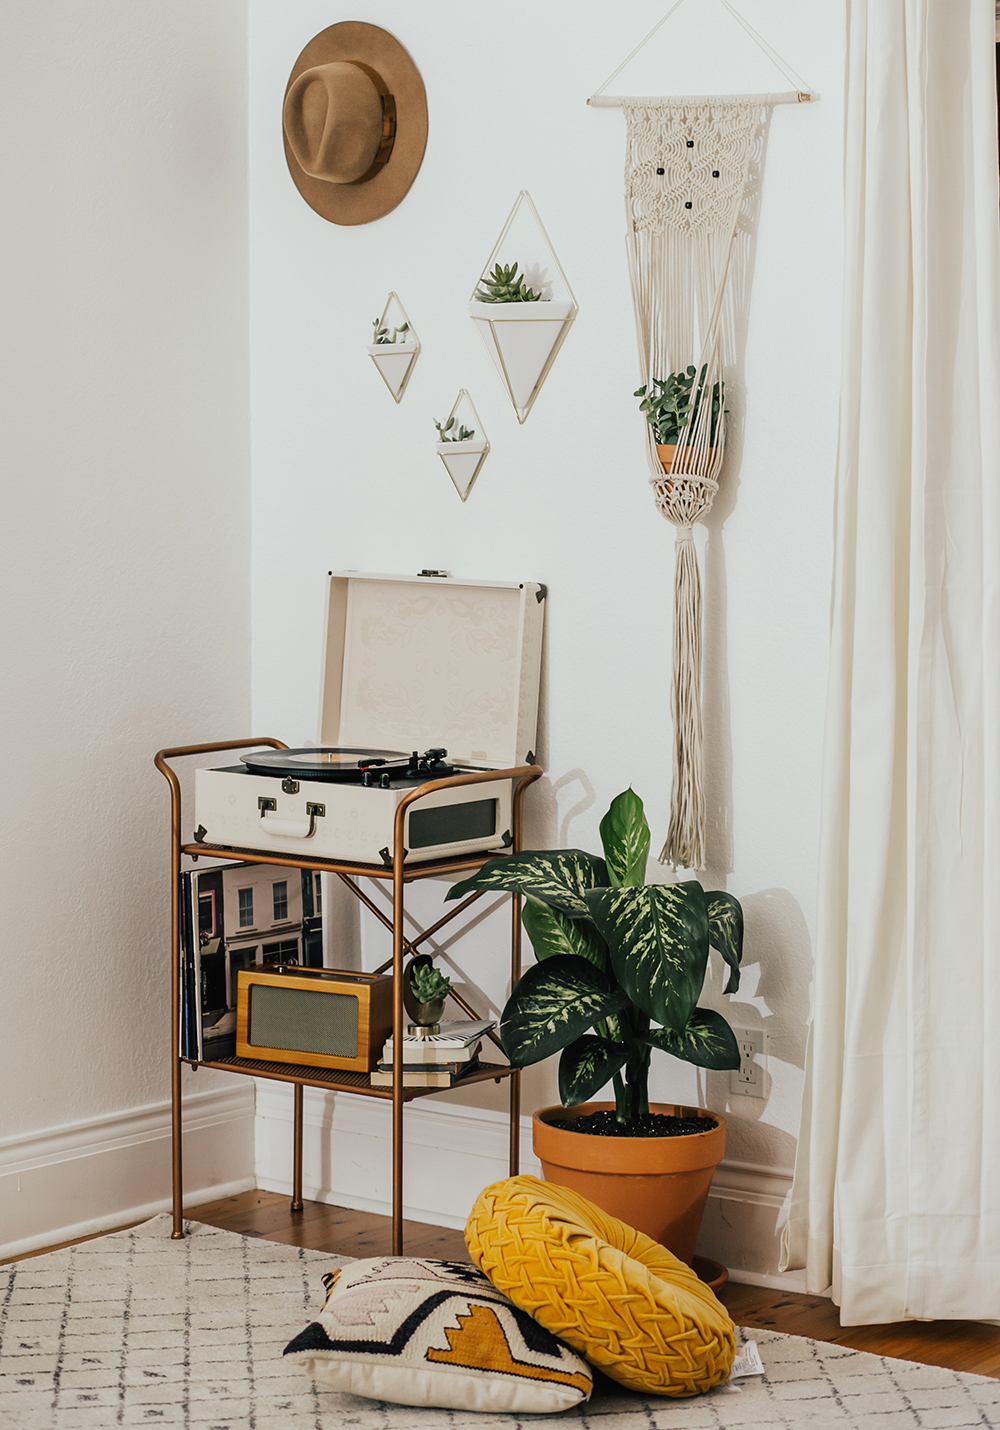 livvyland-blog-olivia-watson-austin-texas-fashion-blogger-urban-outfitters-record-player-nook-room-setup-holder-interior-boho-style-levis-wedgie-shorts-10